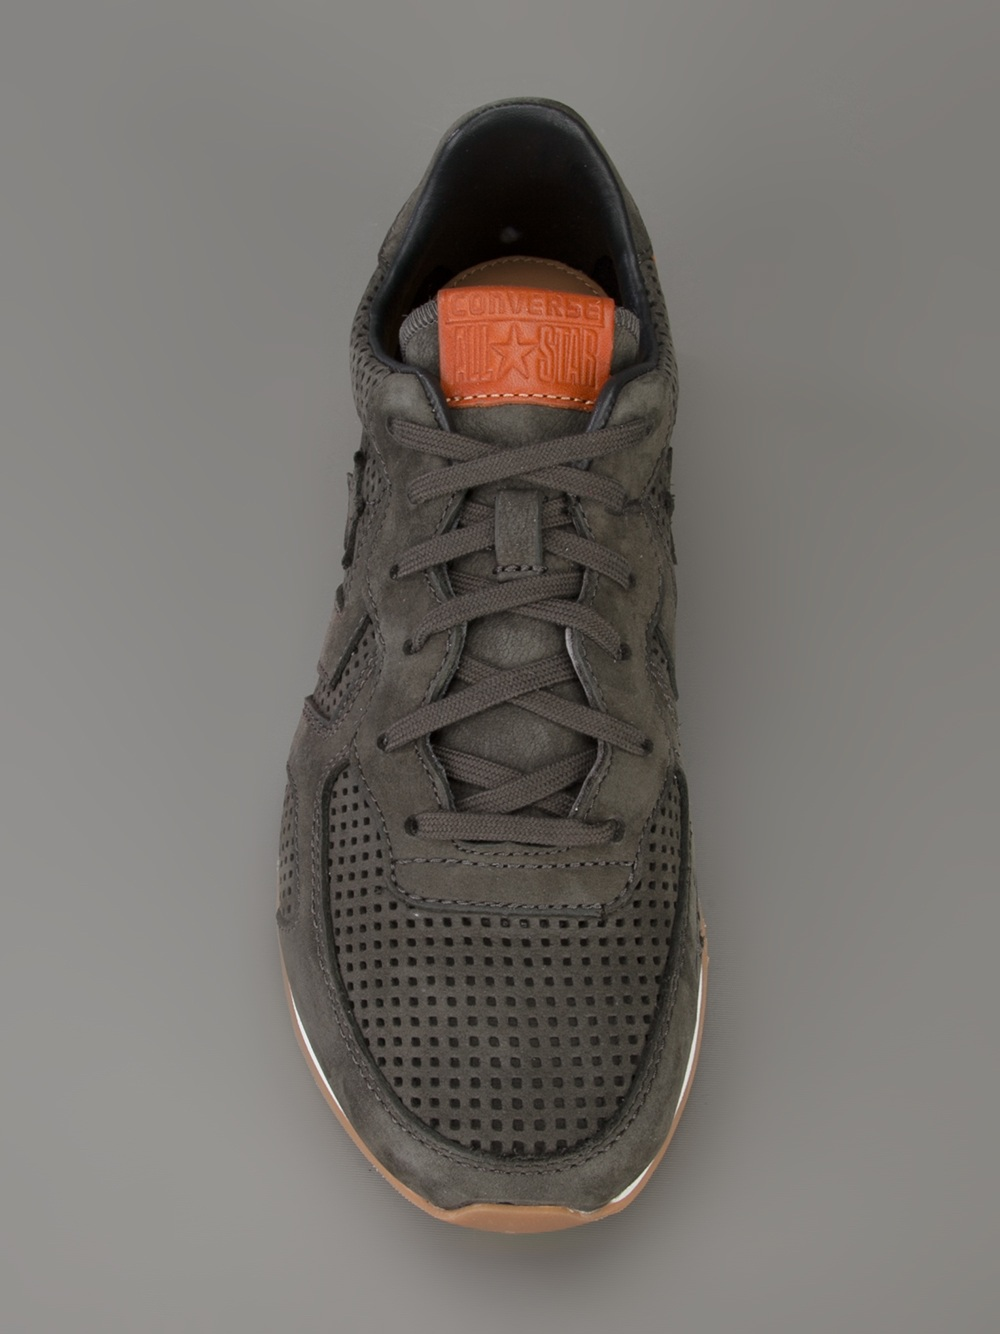 Converse Auckland Racer Beluga Trainer In Gray For Men Lyst